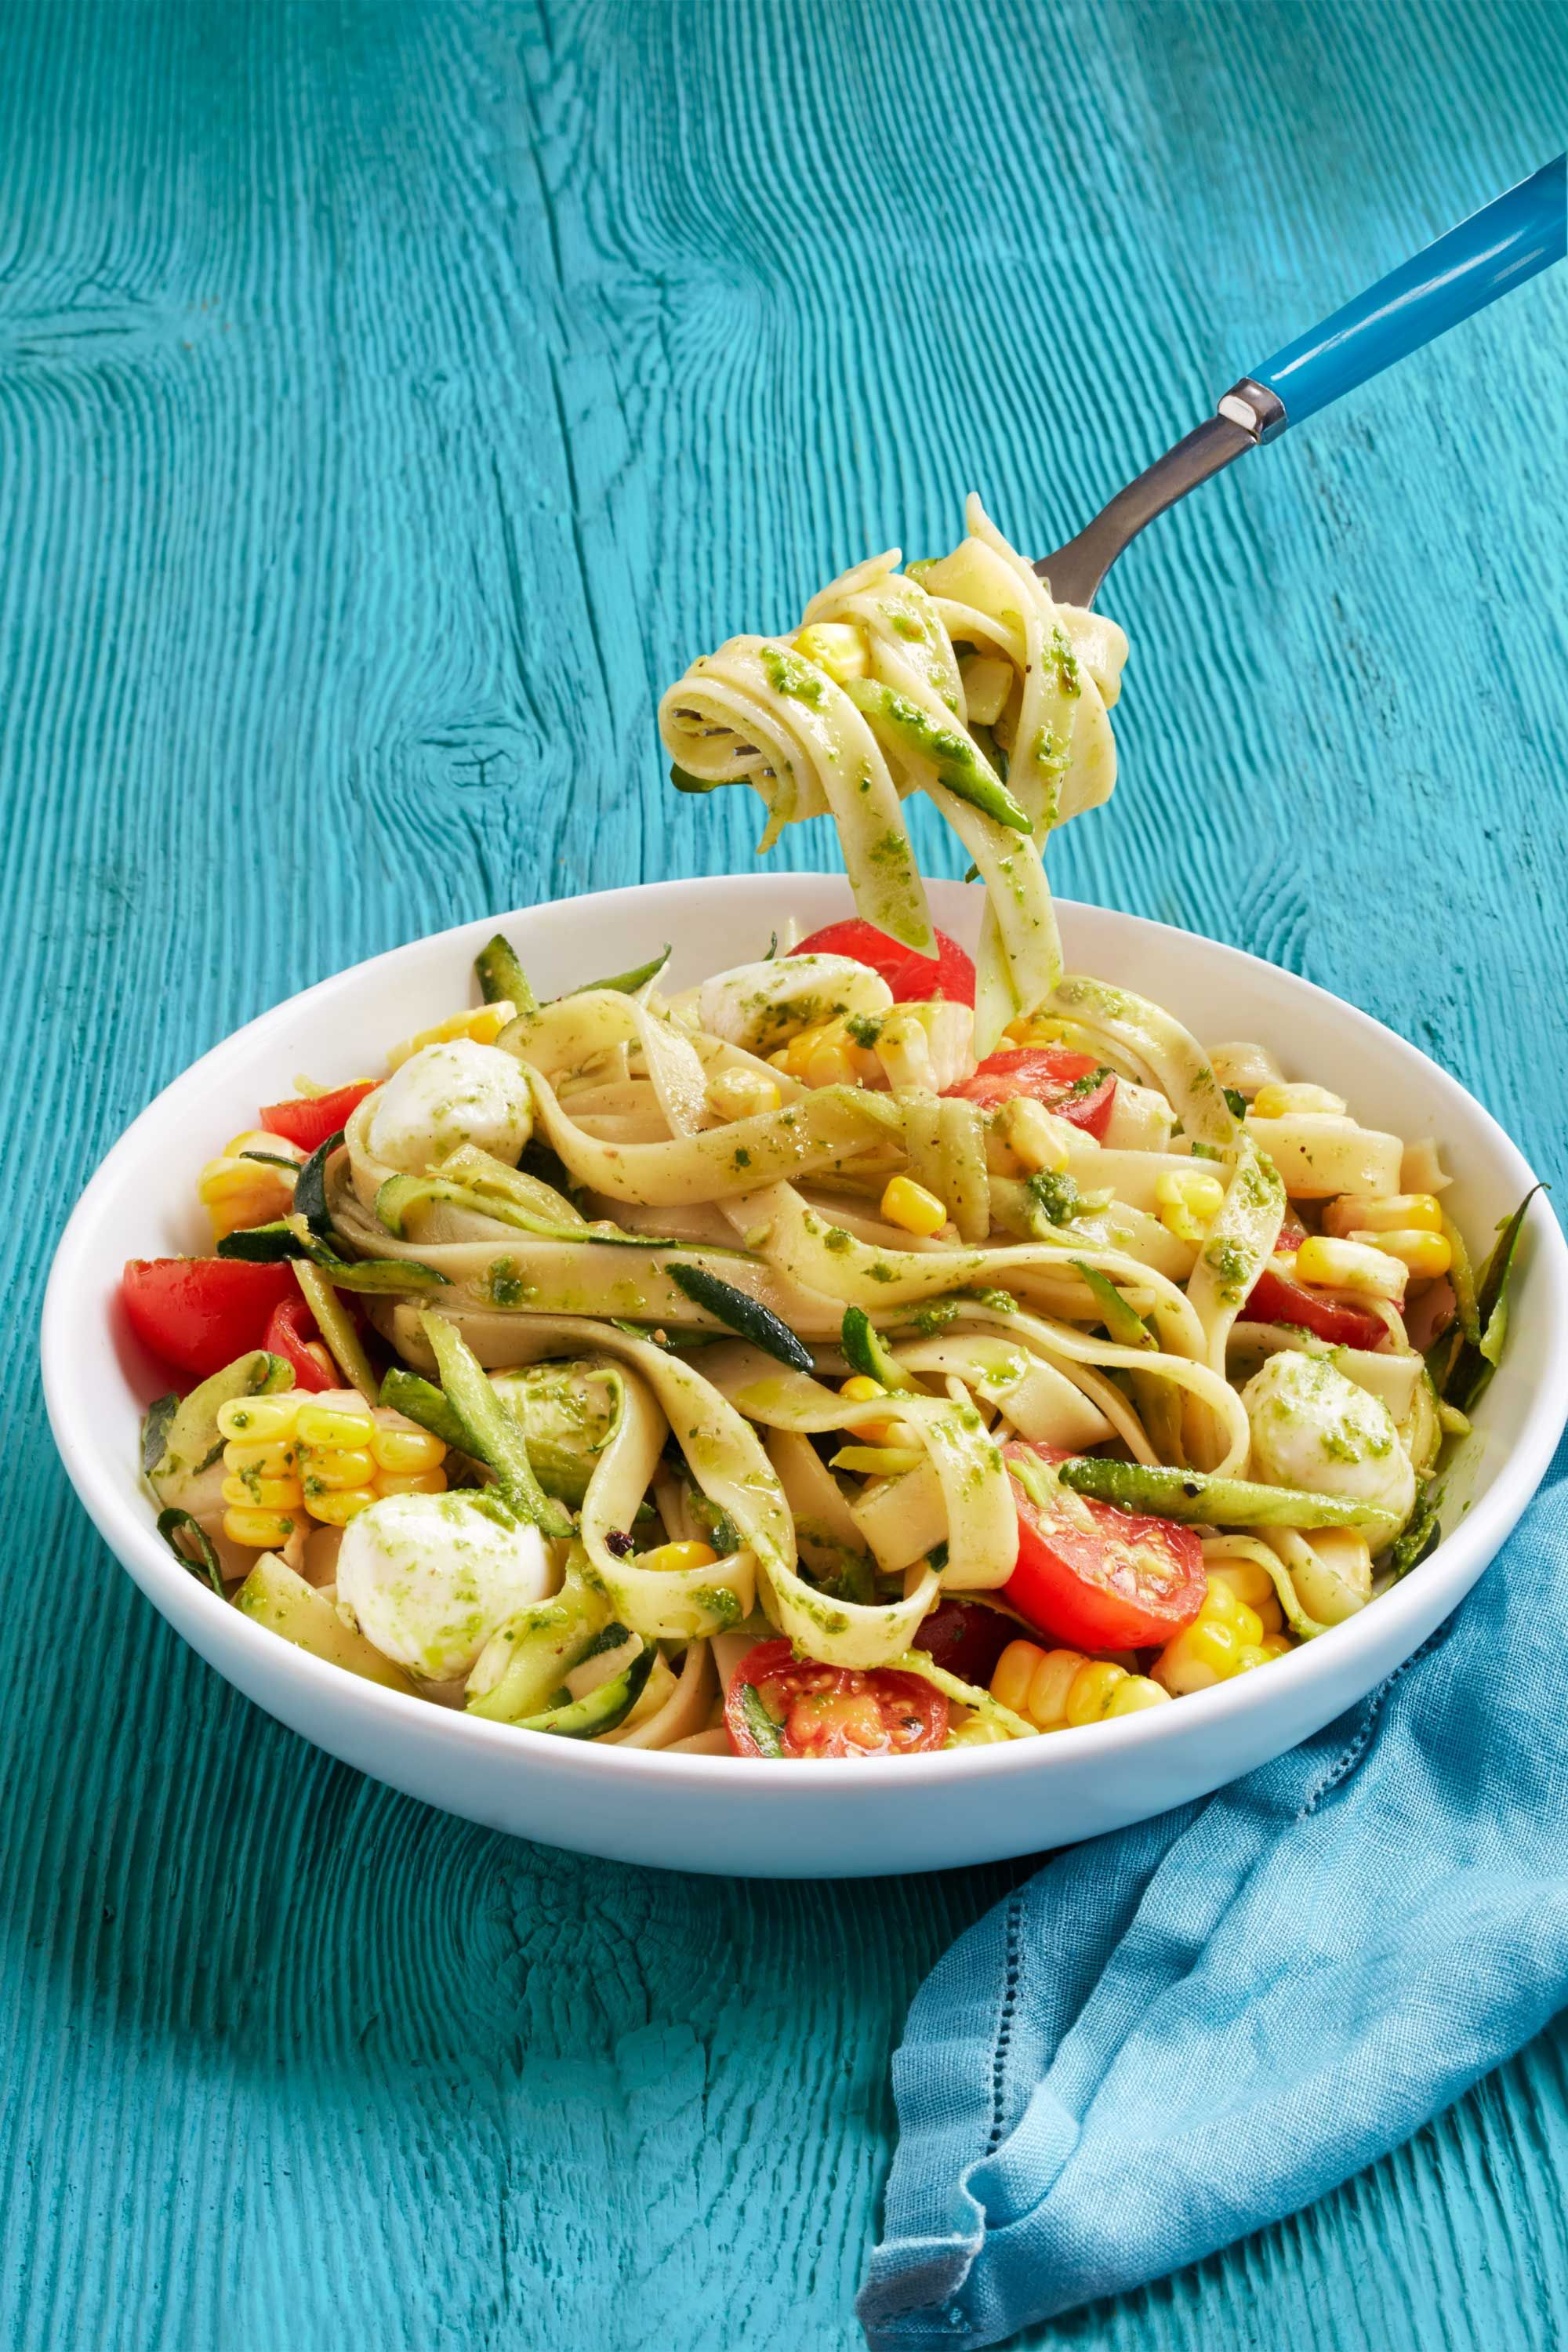 24 Best Summer Pasta Recipes - Easy Pasta Dishes for Summer